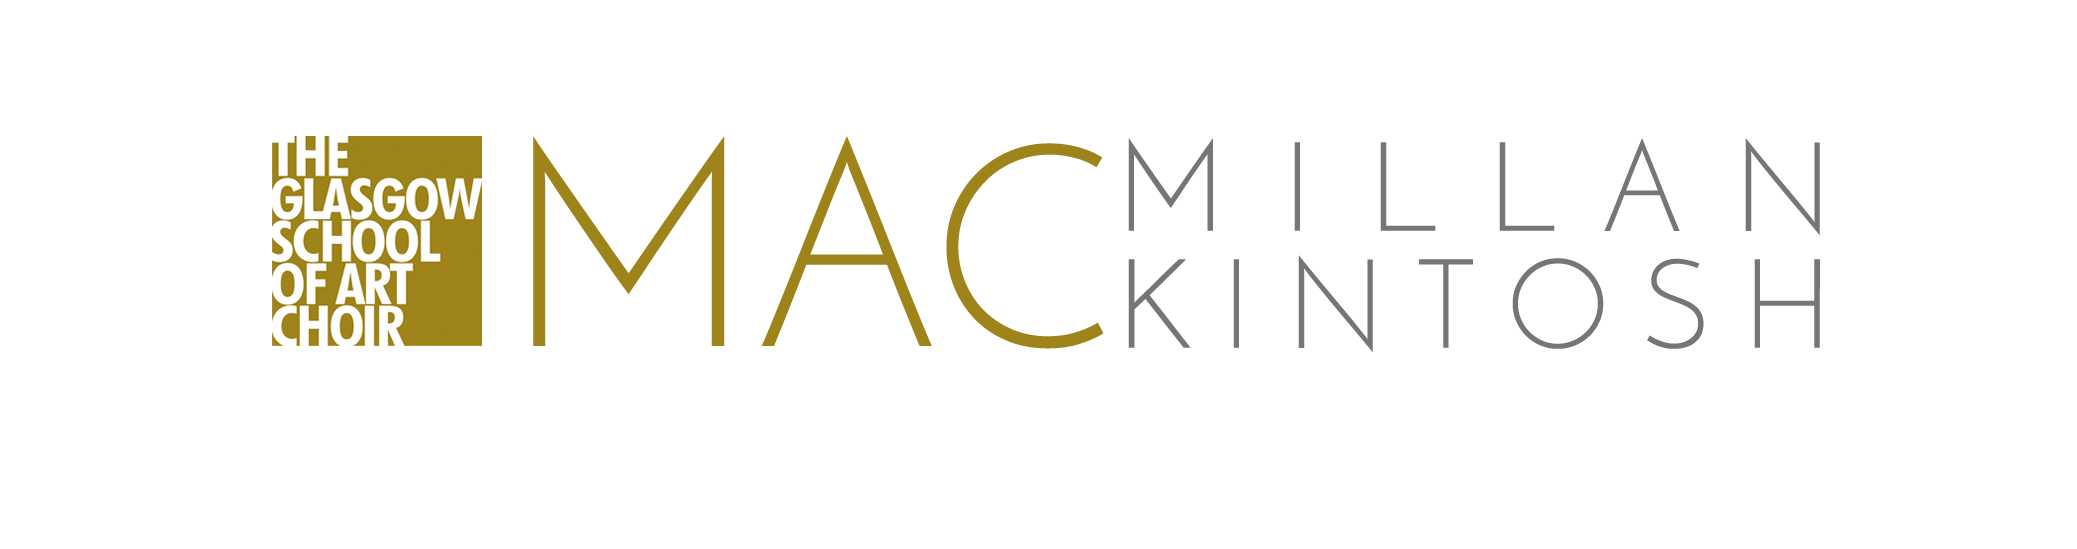 The MacMillan/Mackintosh project logo